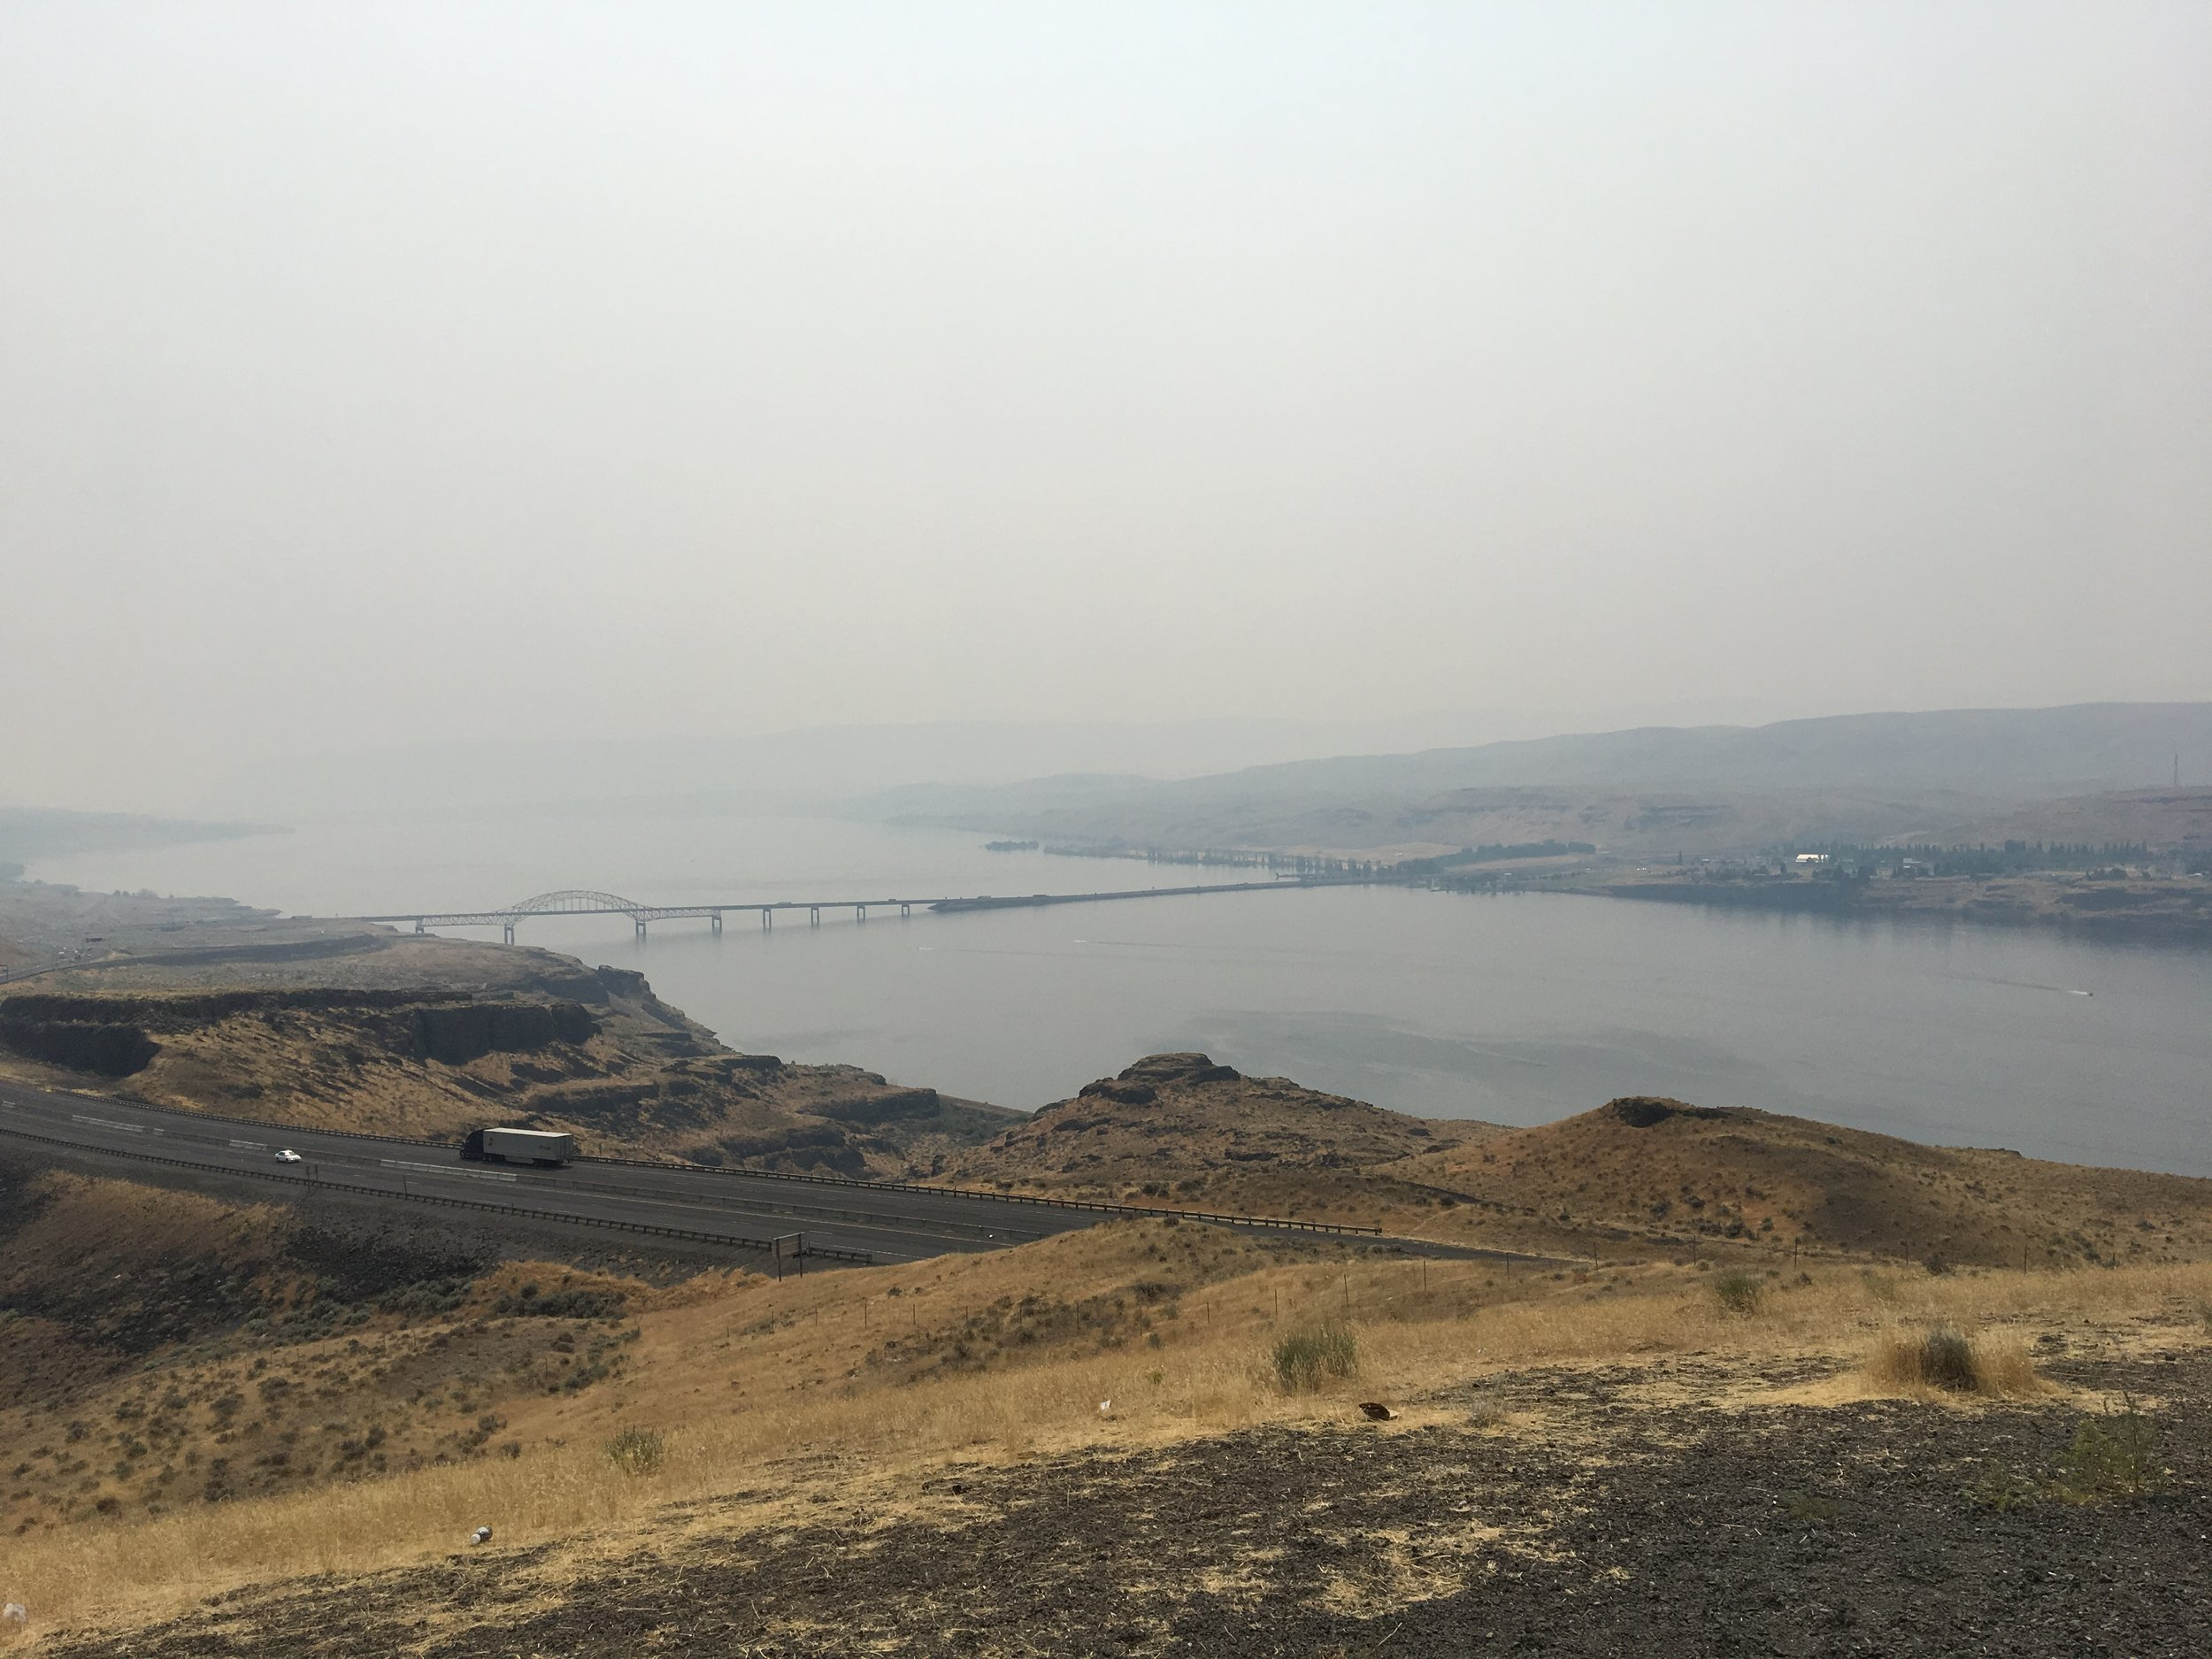 Looking back on the Columbia River from the Wild Horse Monument. Smoke for days...